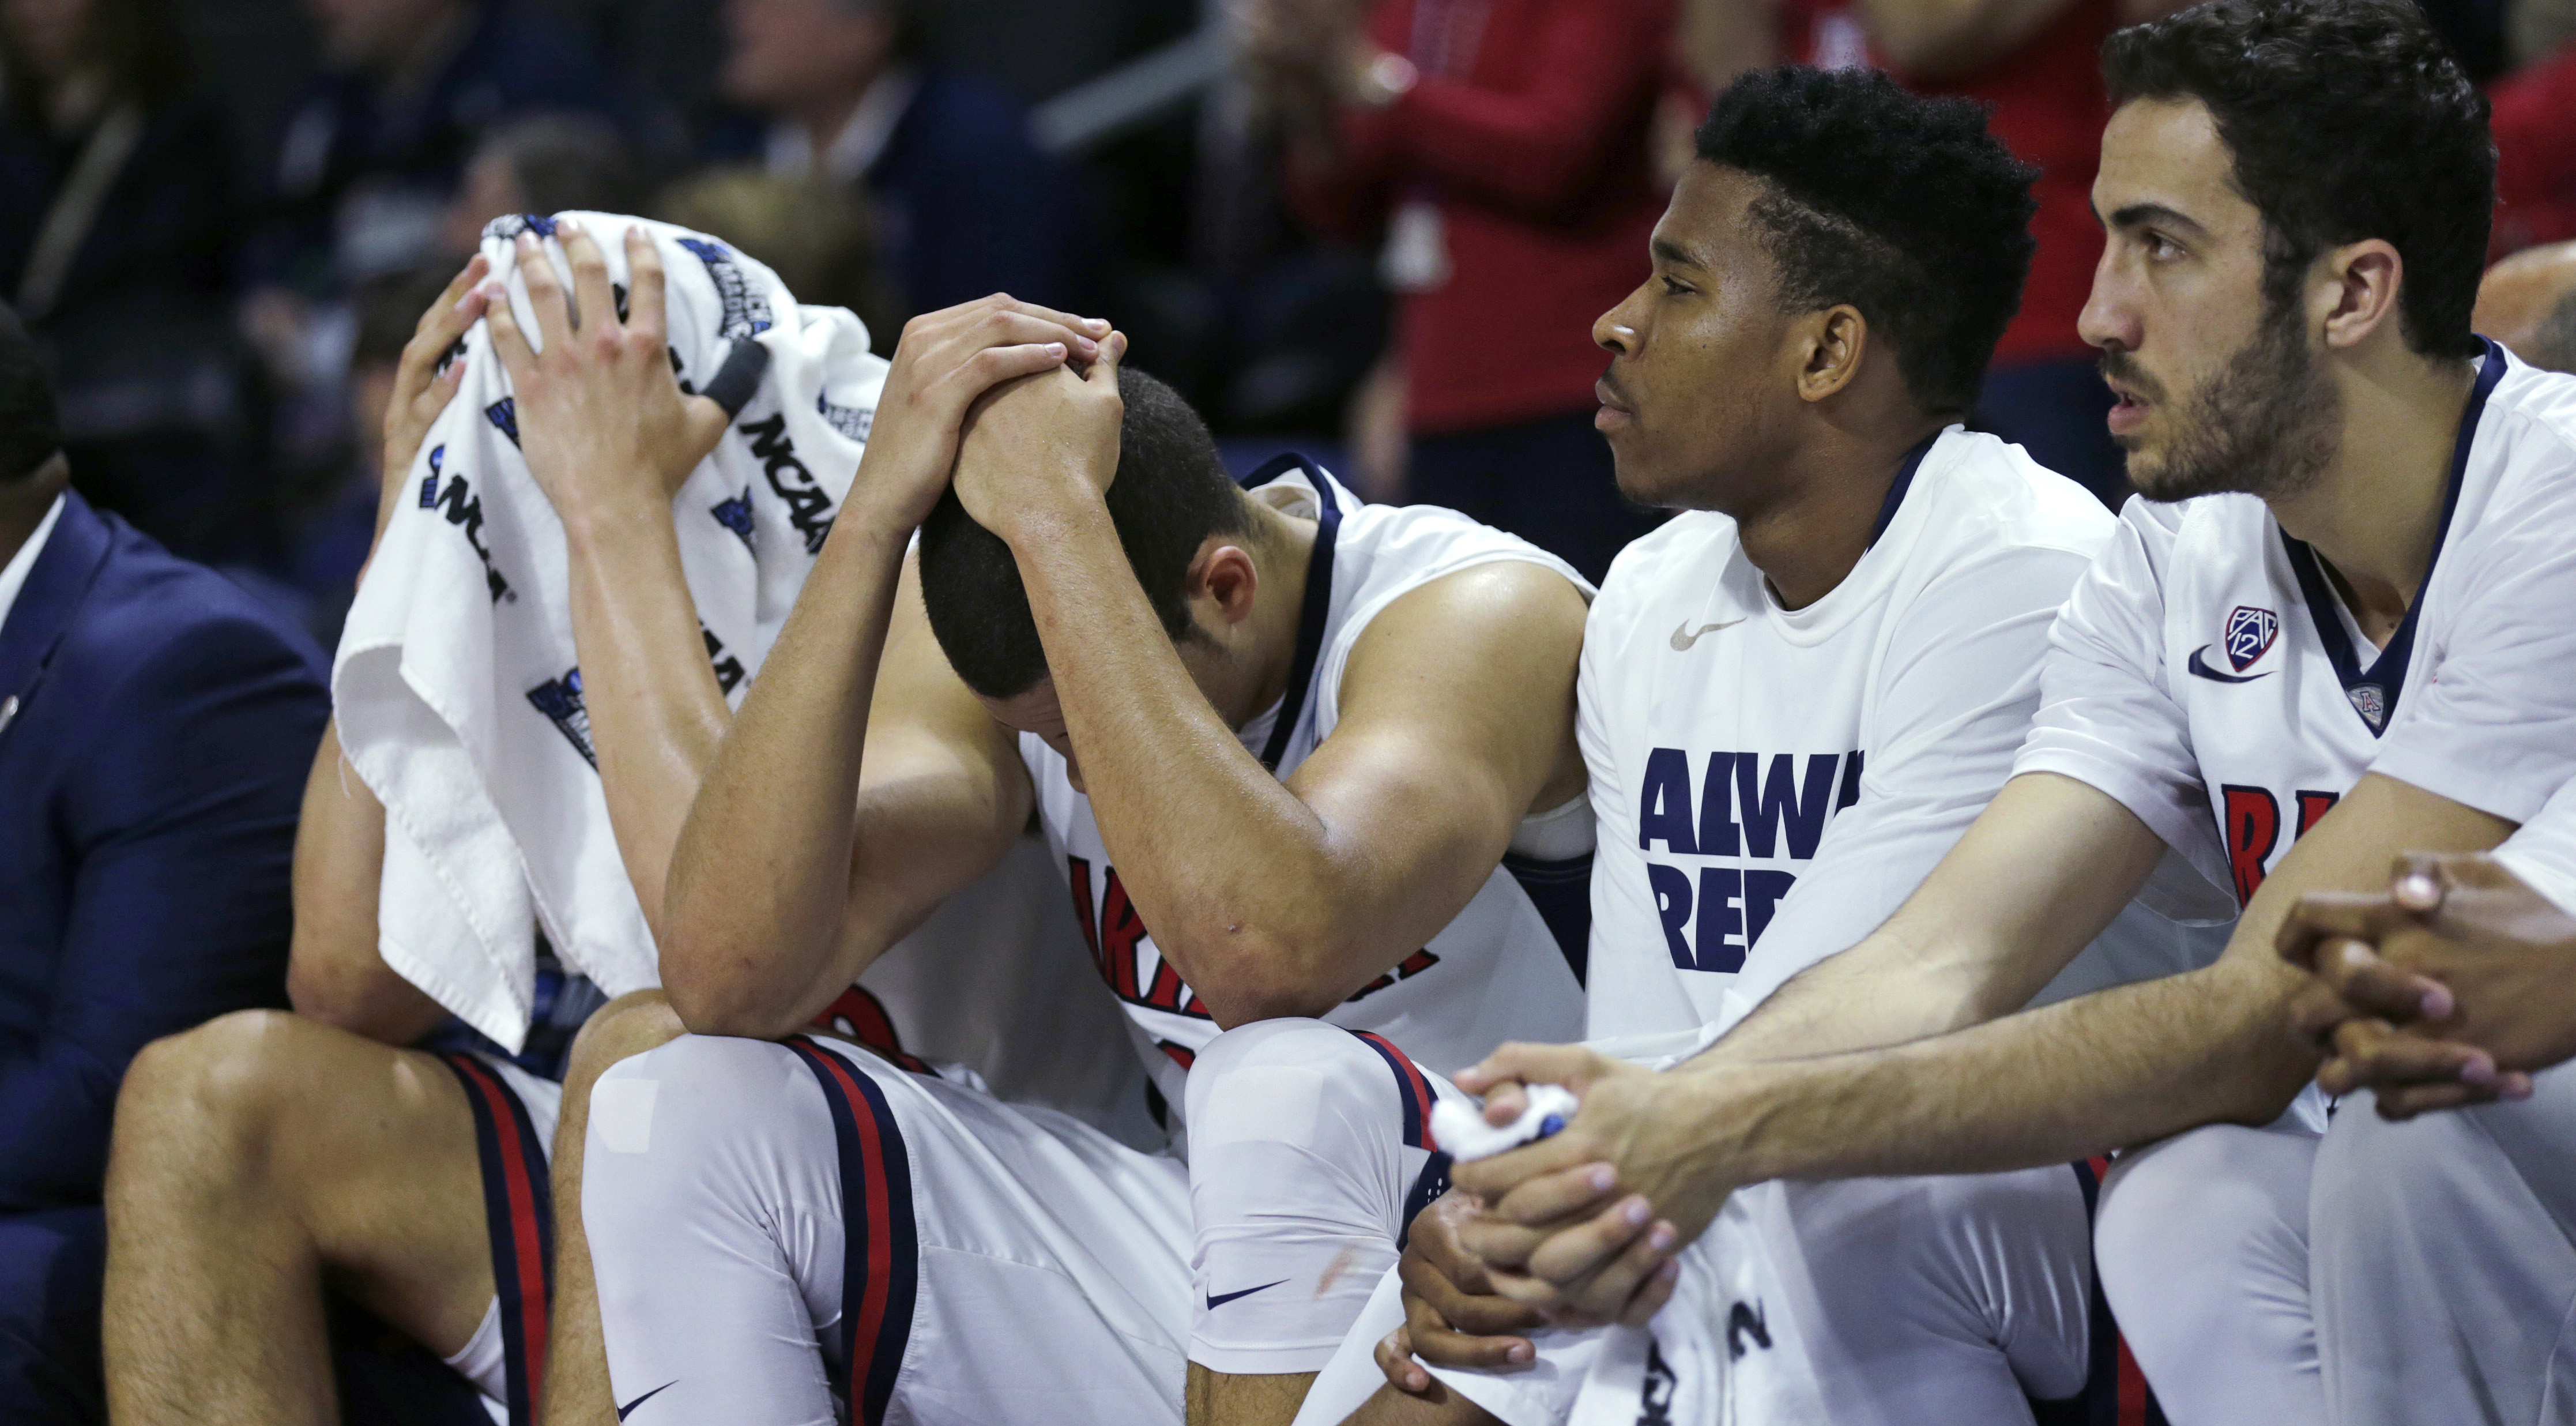 Arizona players cover their heads in the closing minute against Wichita State during the first round of the NCAA college men's basketball tournament in Providence, R.I., Thursday, March 17, 2016. Wichita State defeated Arizona 65-55. (AP Photo/Charles Kru